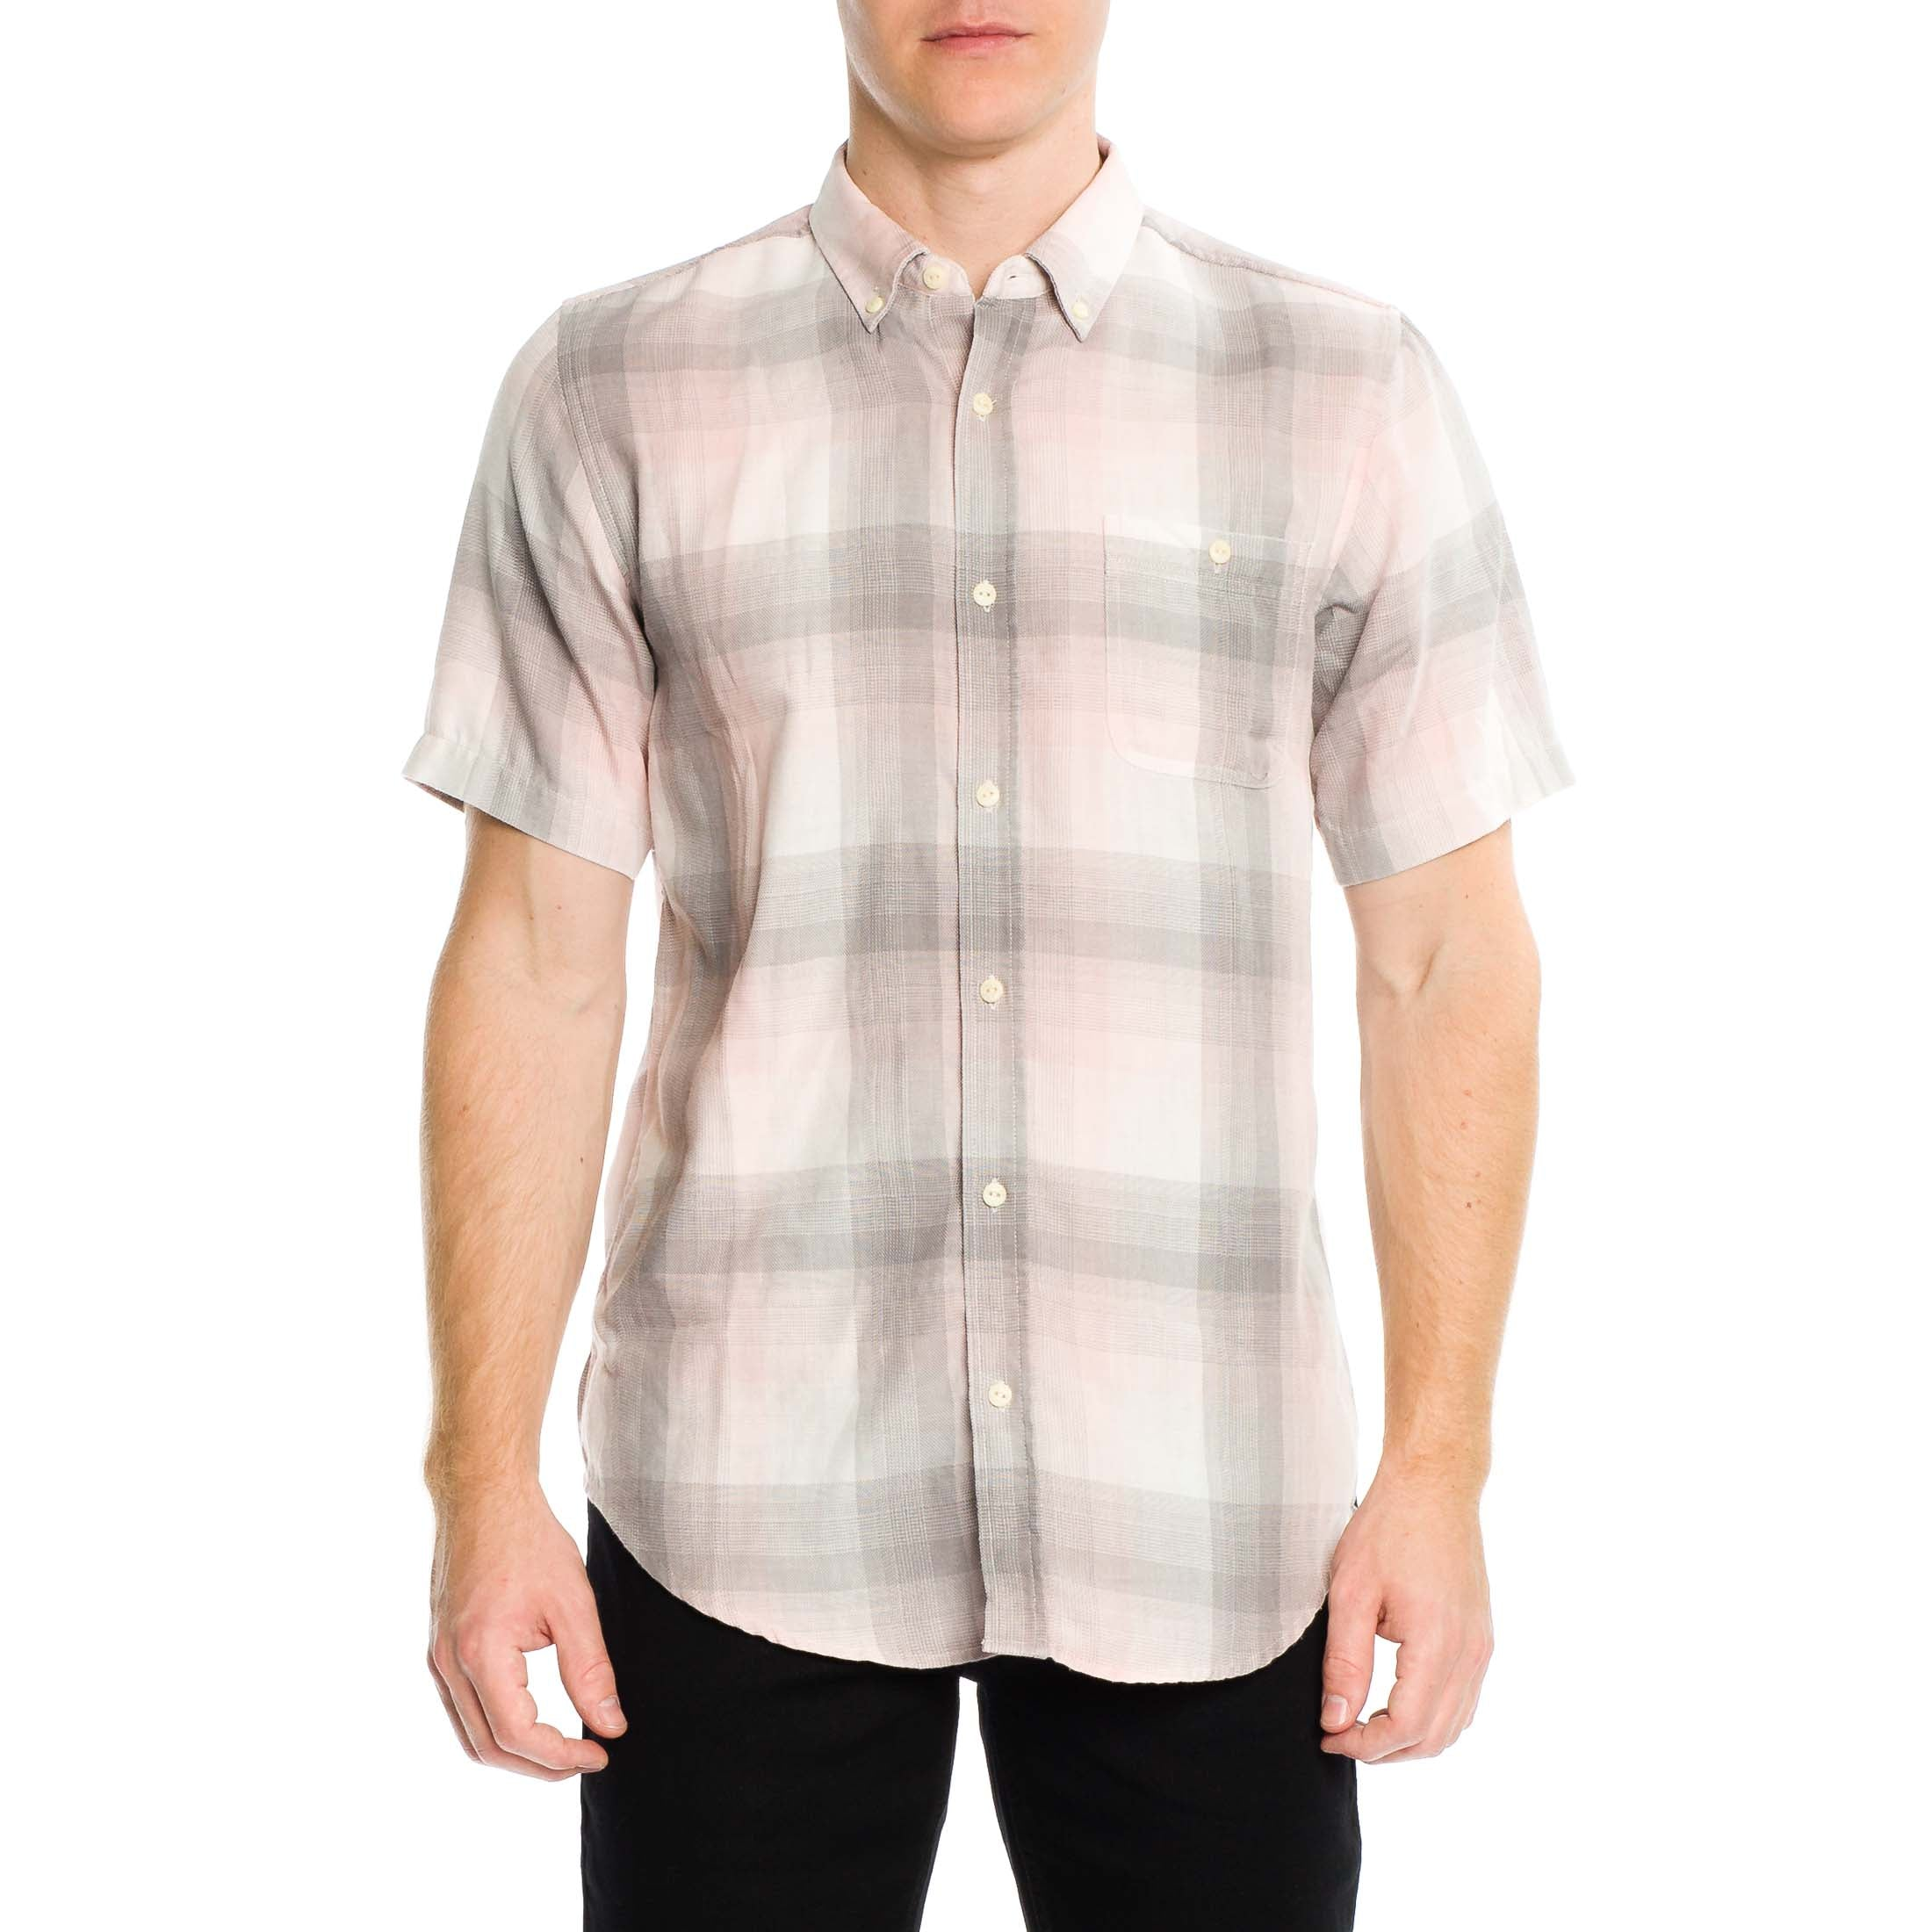 Tarly Short Sleeve Shirt - Sandy Rose - Ezekiel Clothing